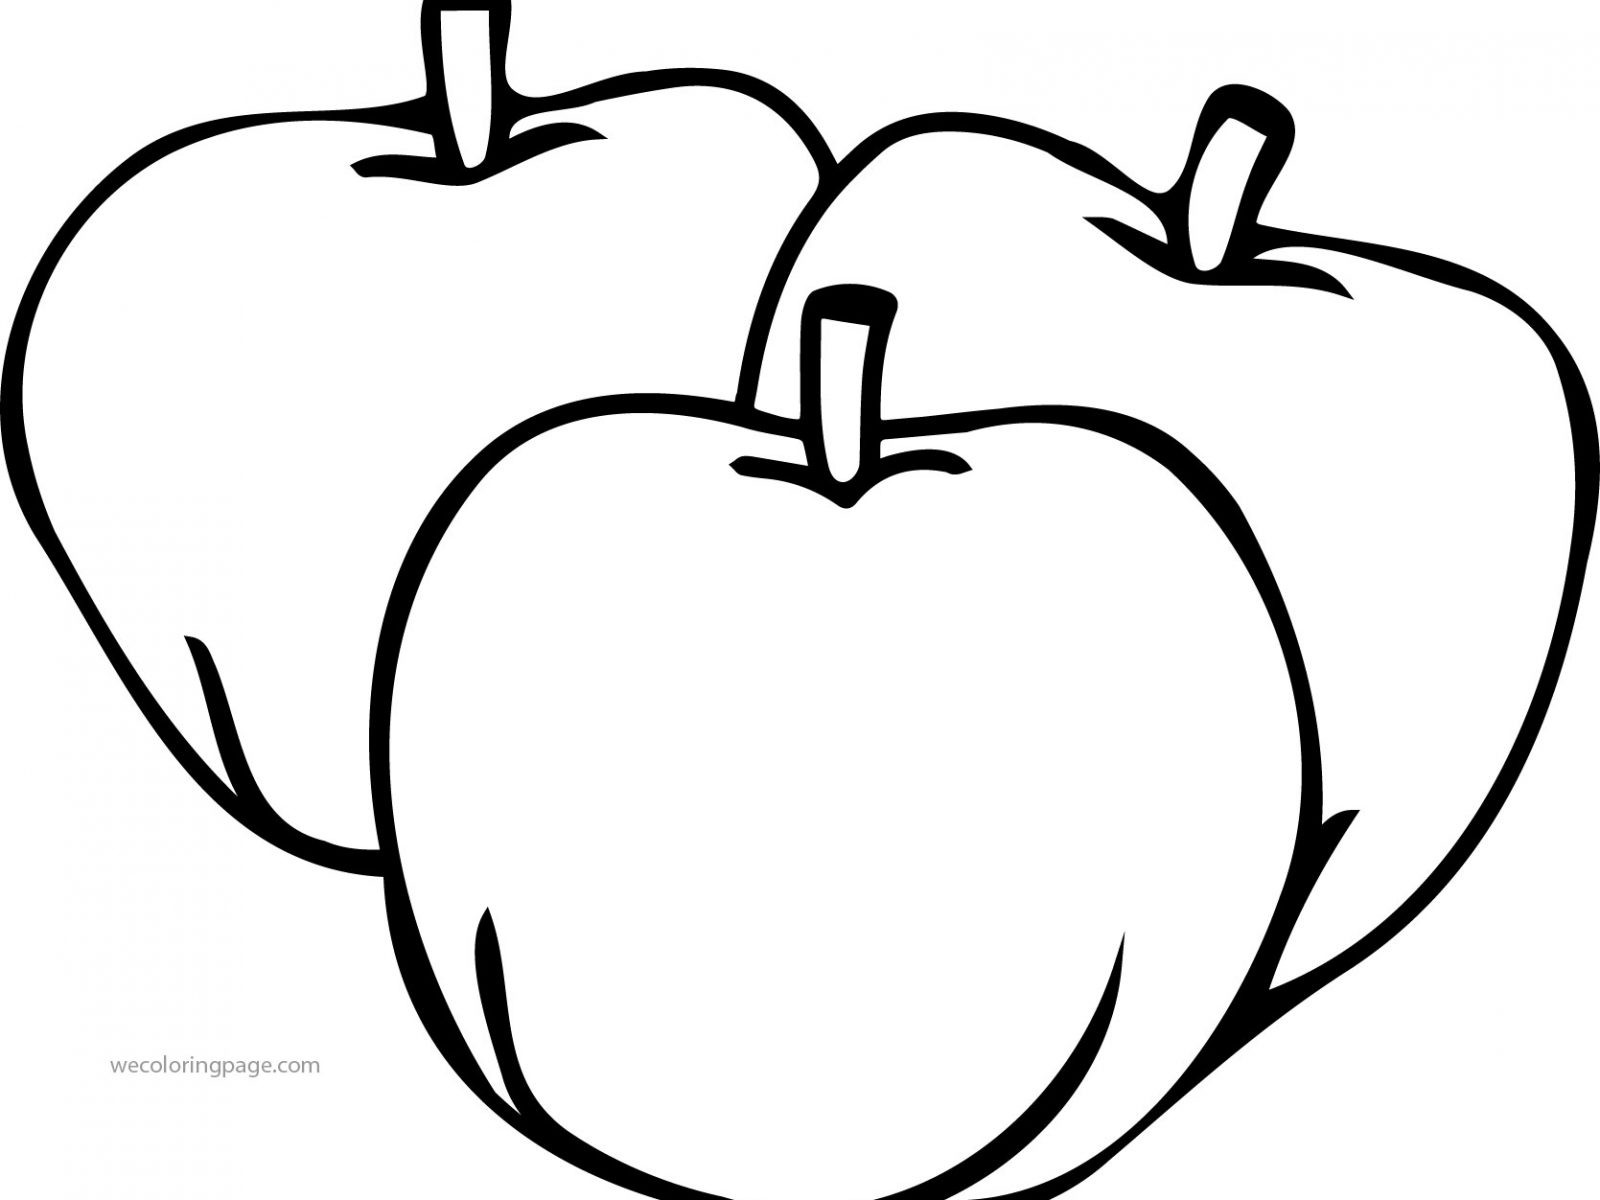 apple drawing for kids at getdrawings com free for personal use